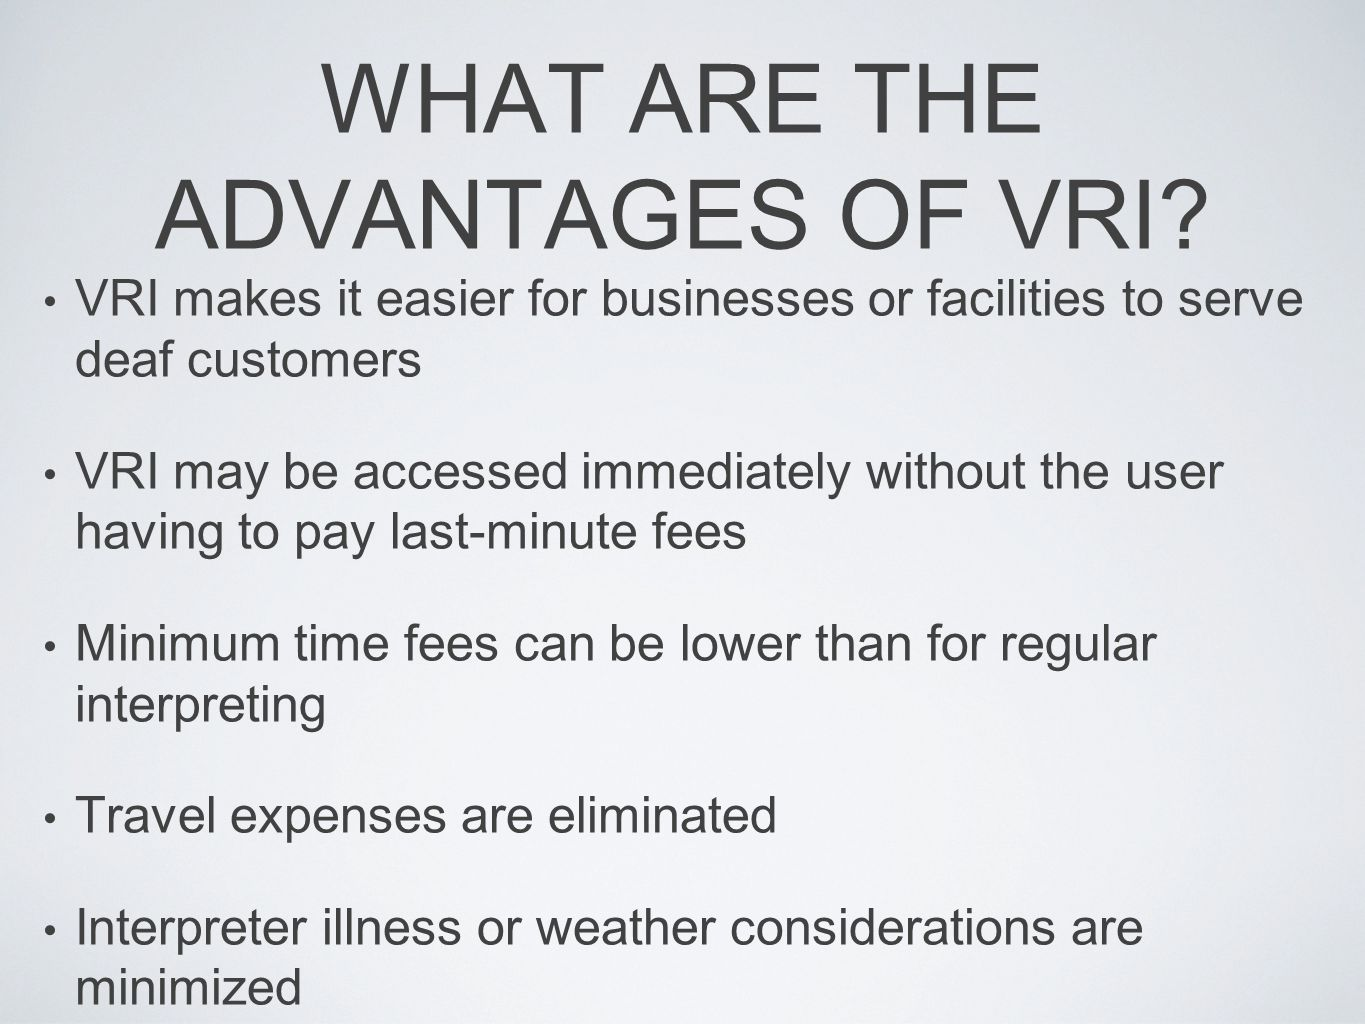 WHAT ARE THE ADVANTAGES OF VRI